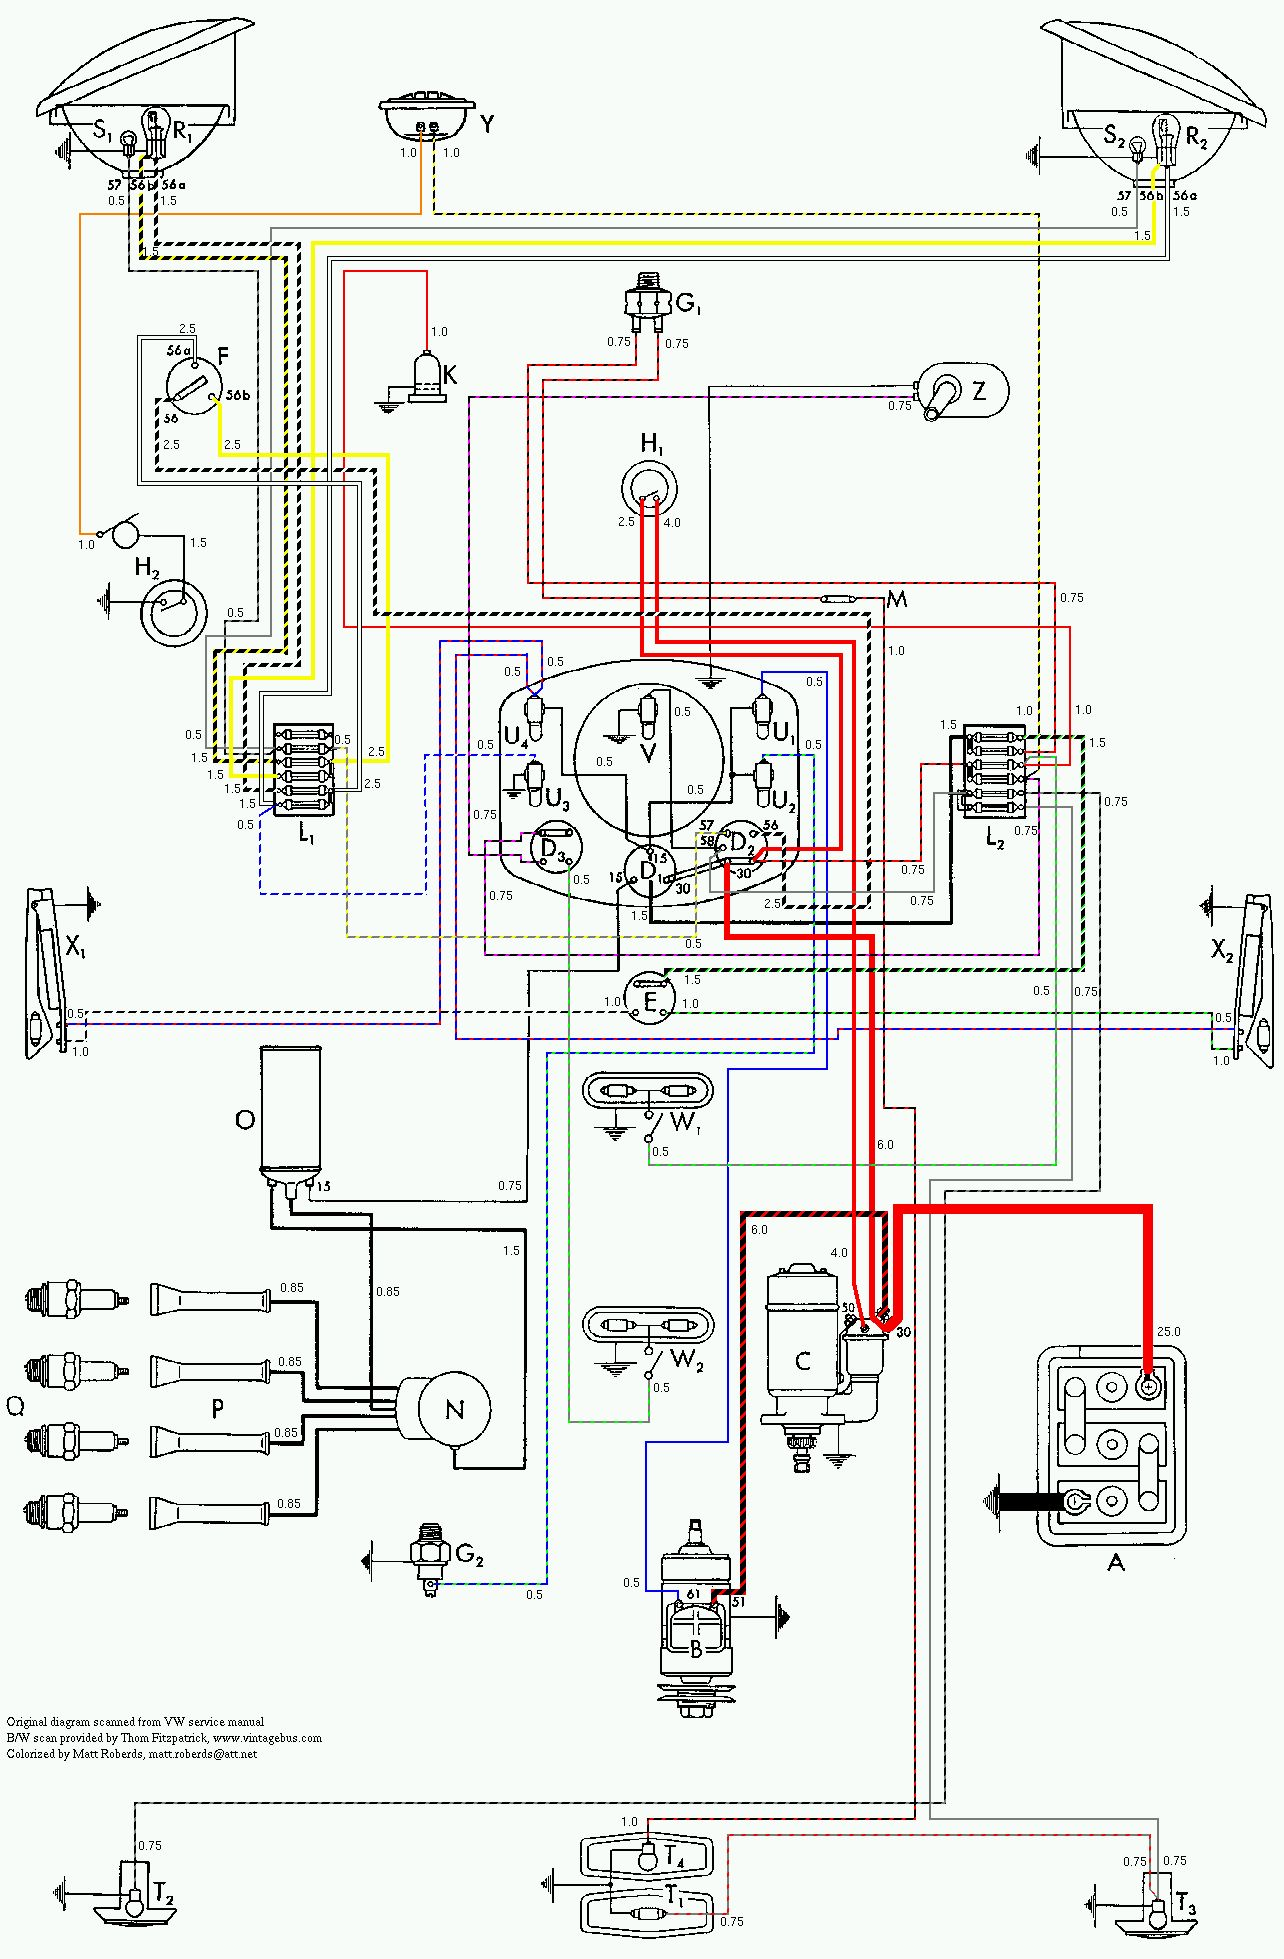 vintagebus com vw bus and other wiring diagrams rh vintagebus com